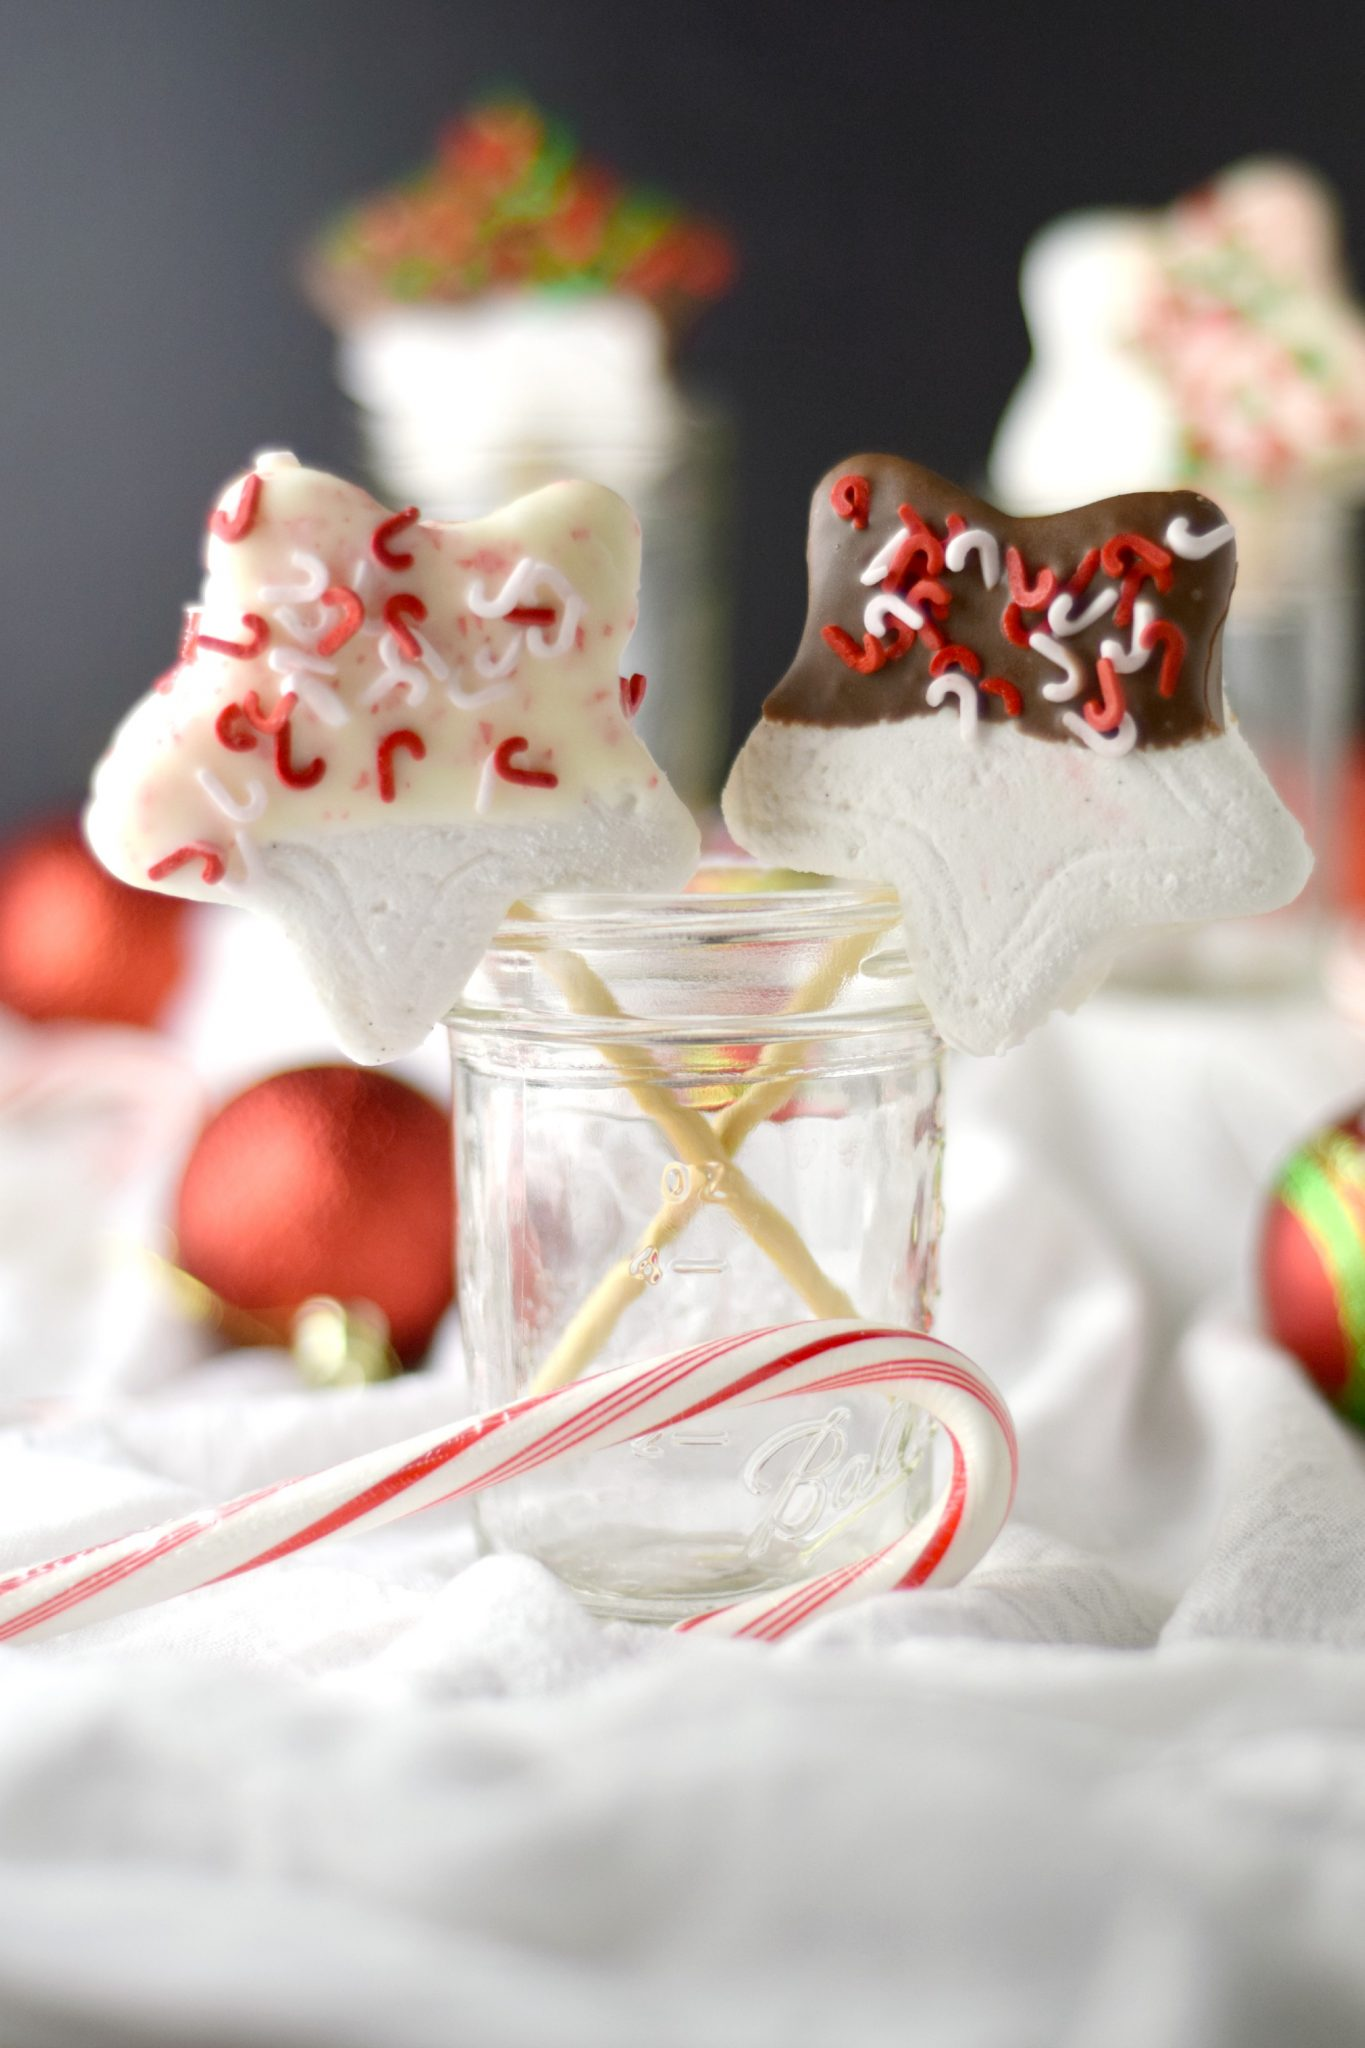 Chocolate and Candy Cane Homemade Marshmallows